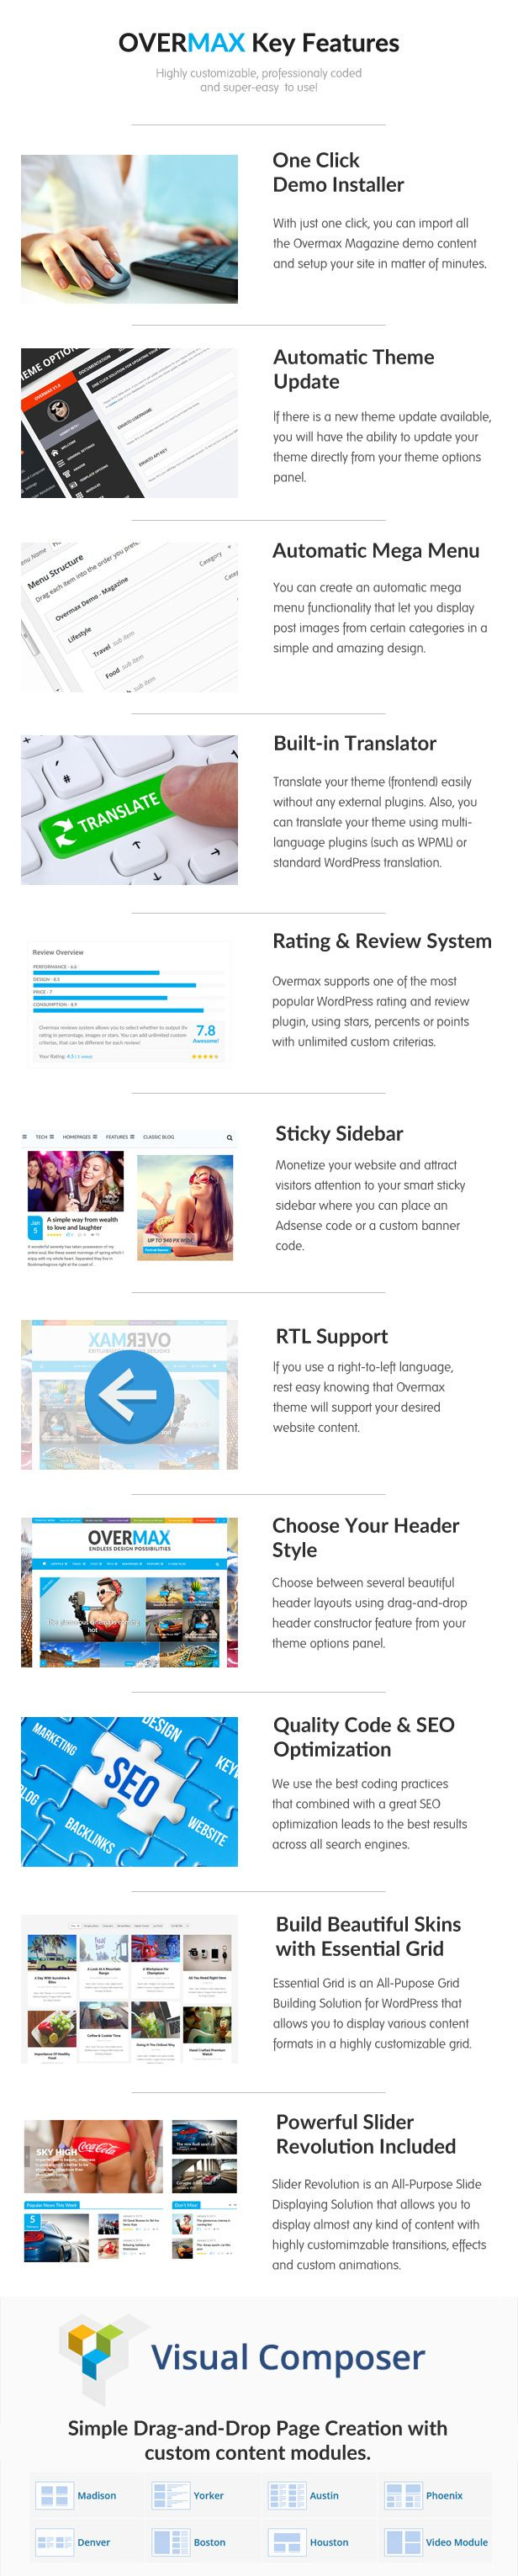 Overmax - A Highly Customizable WordPress Magazine Theme